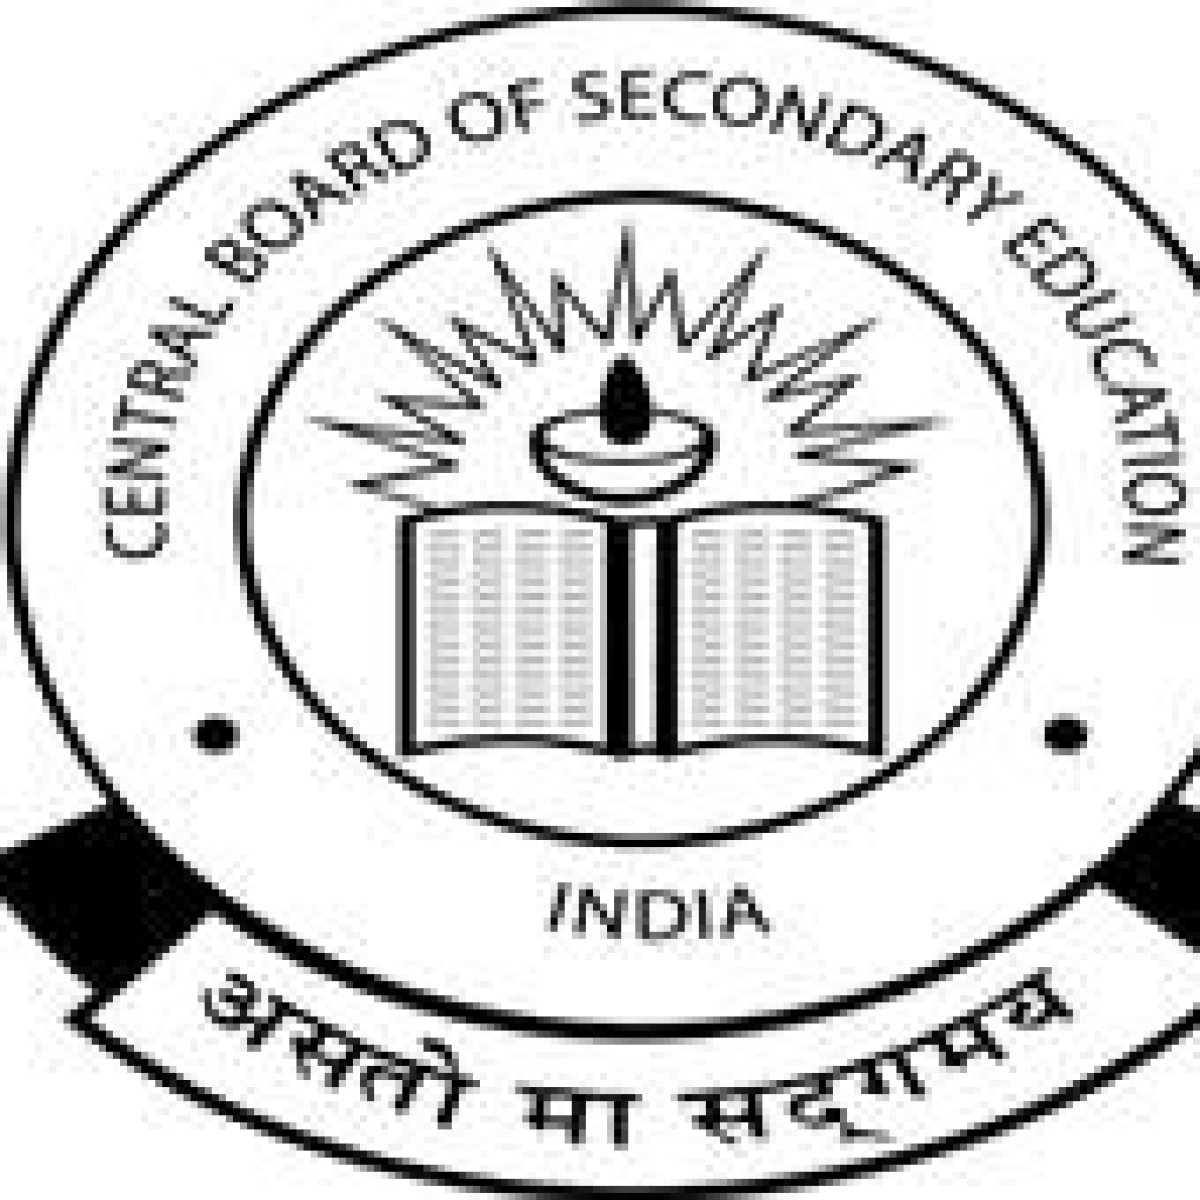 CBSE Class 12 results: Girls rule, outperform boys